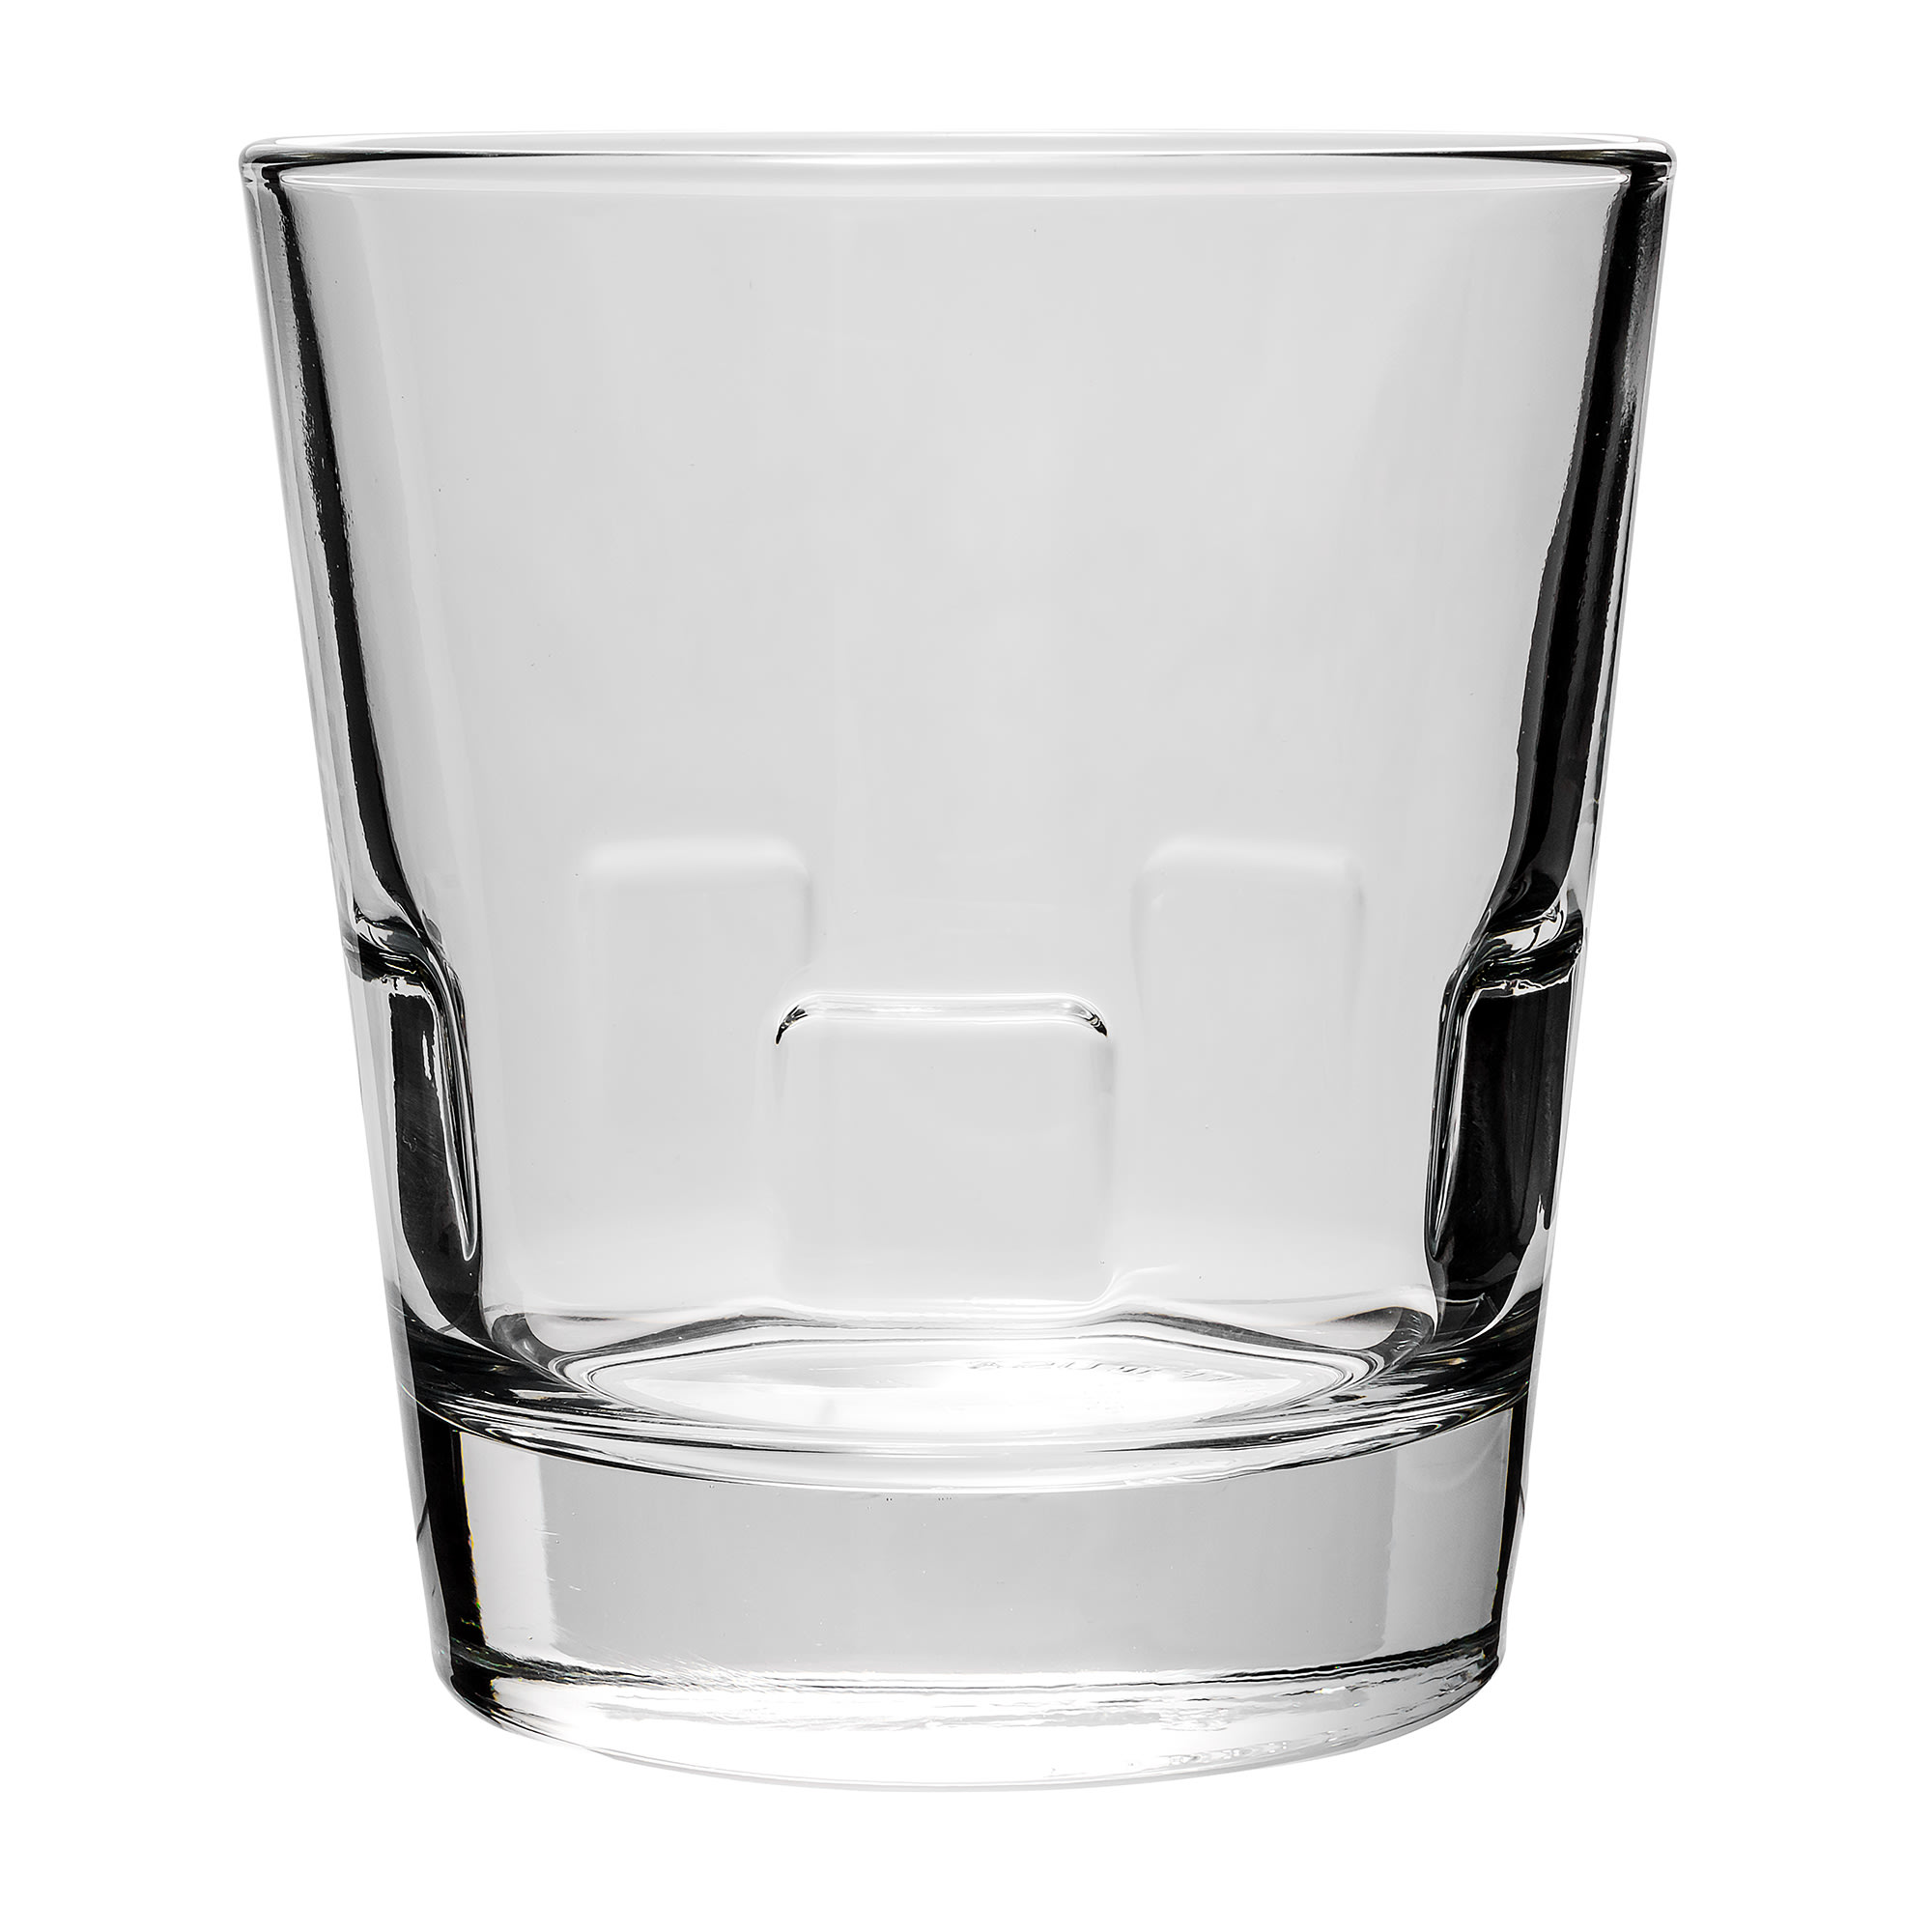 Libbey 15962 10-oz Rocks Glass - Optiva, Stackable